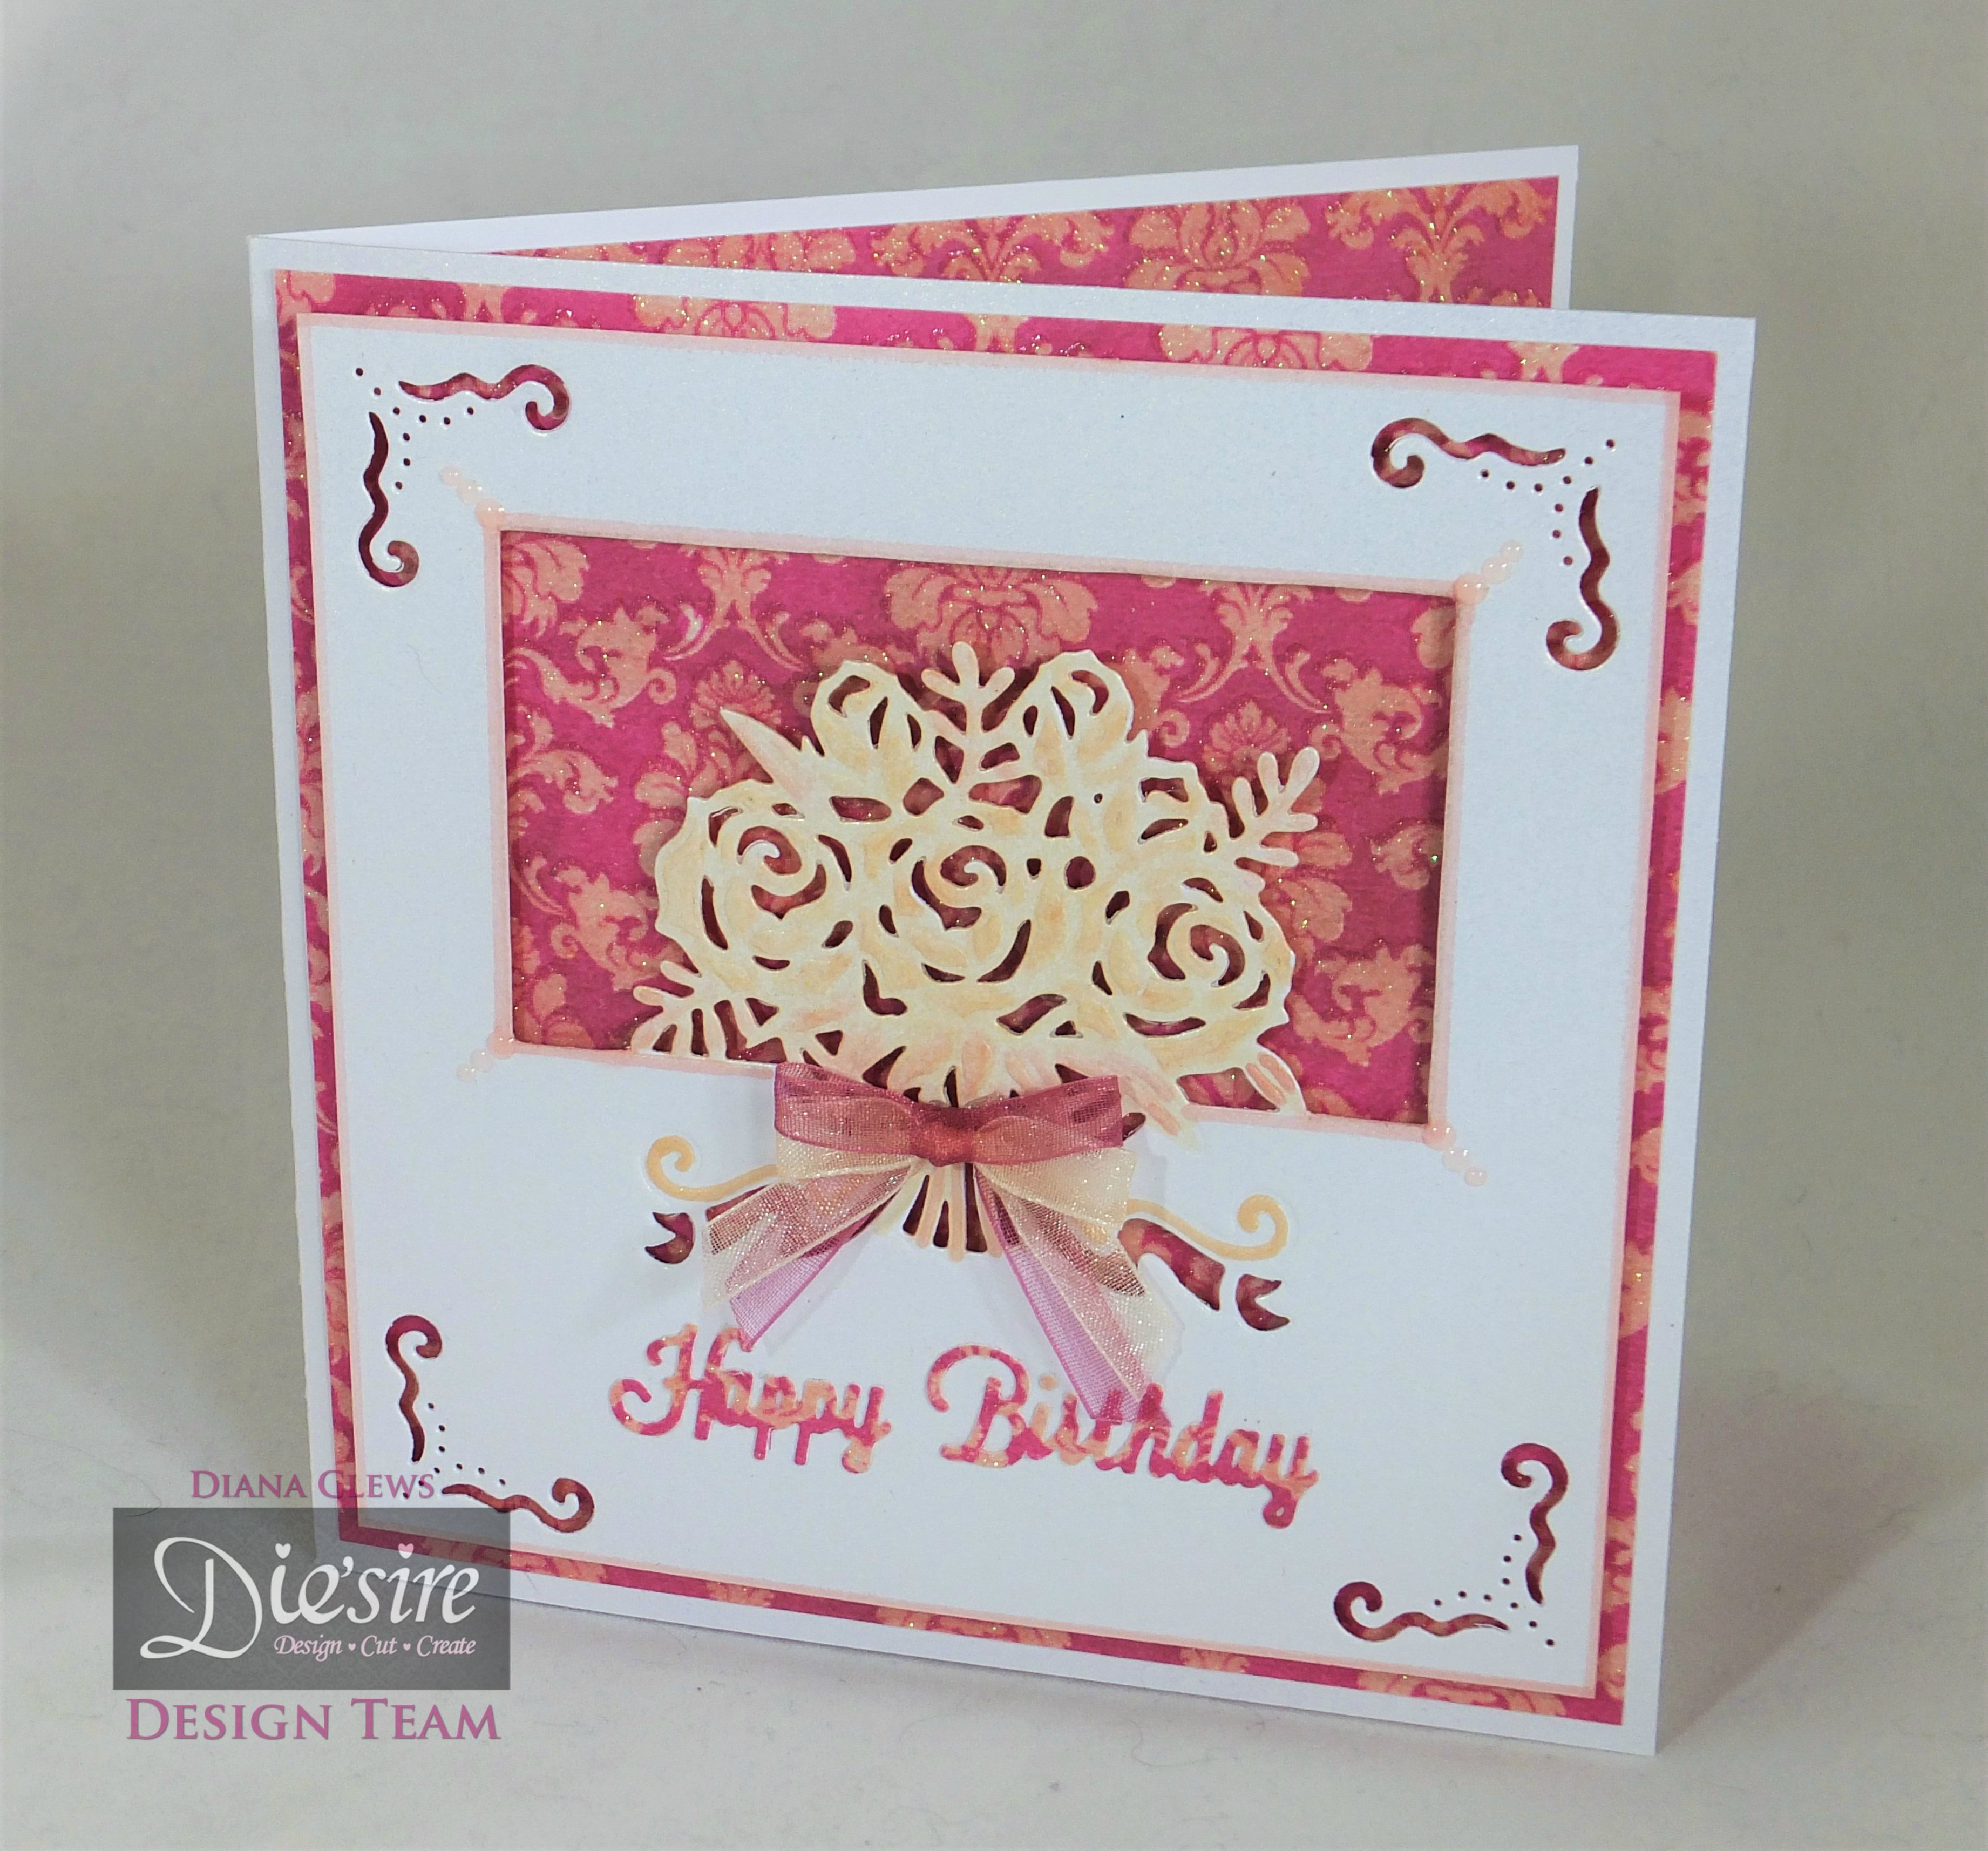 Die/'sire Edge/'ables Beautiful Bouquet Metal Die by Crafter/'s Companion NEW